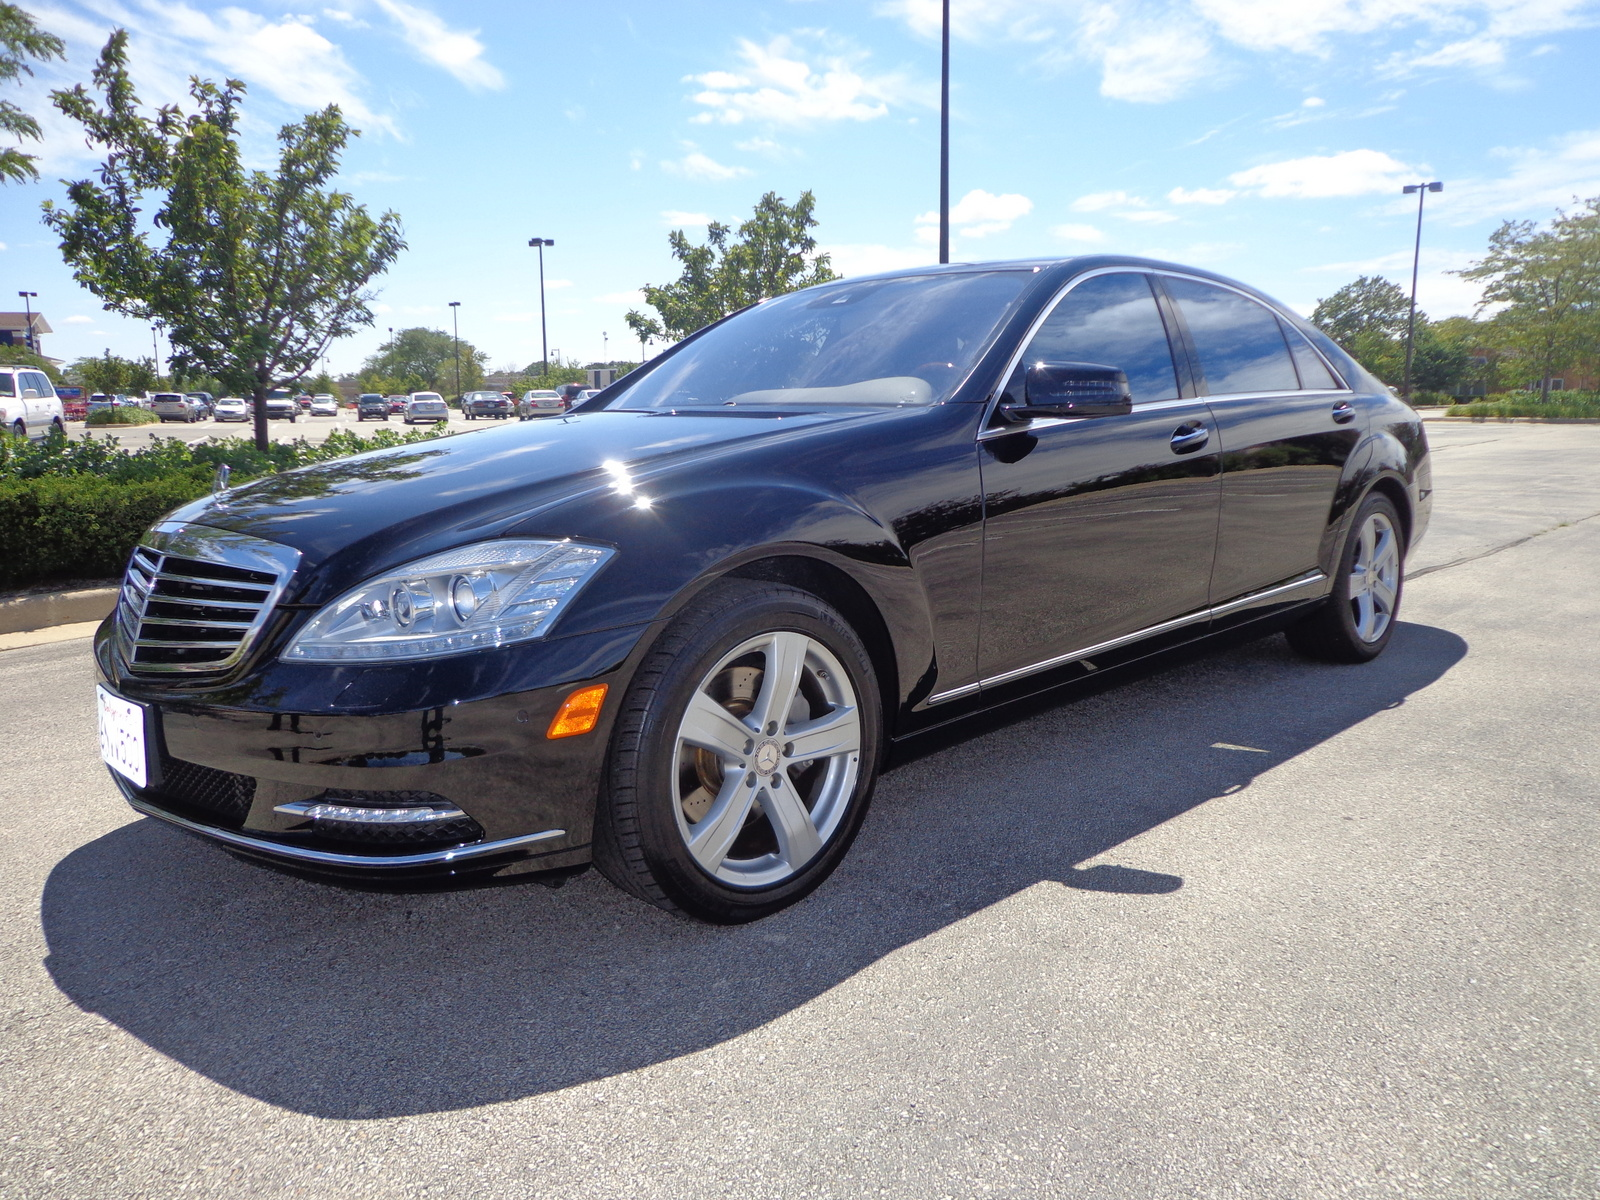 2010 mercedes benz s class pictures cargurus for Mercedes benz s550 for sale